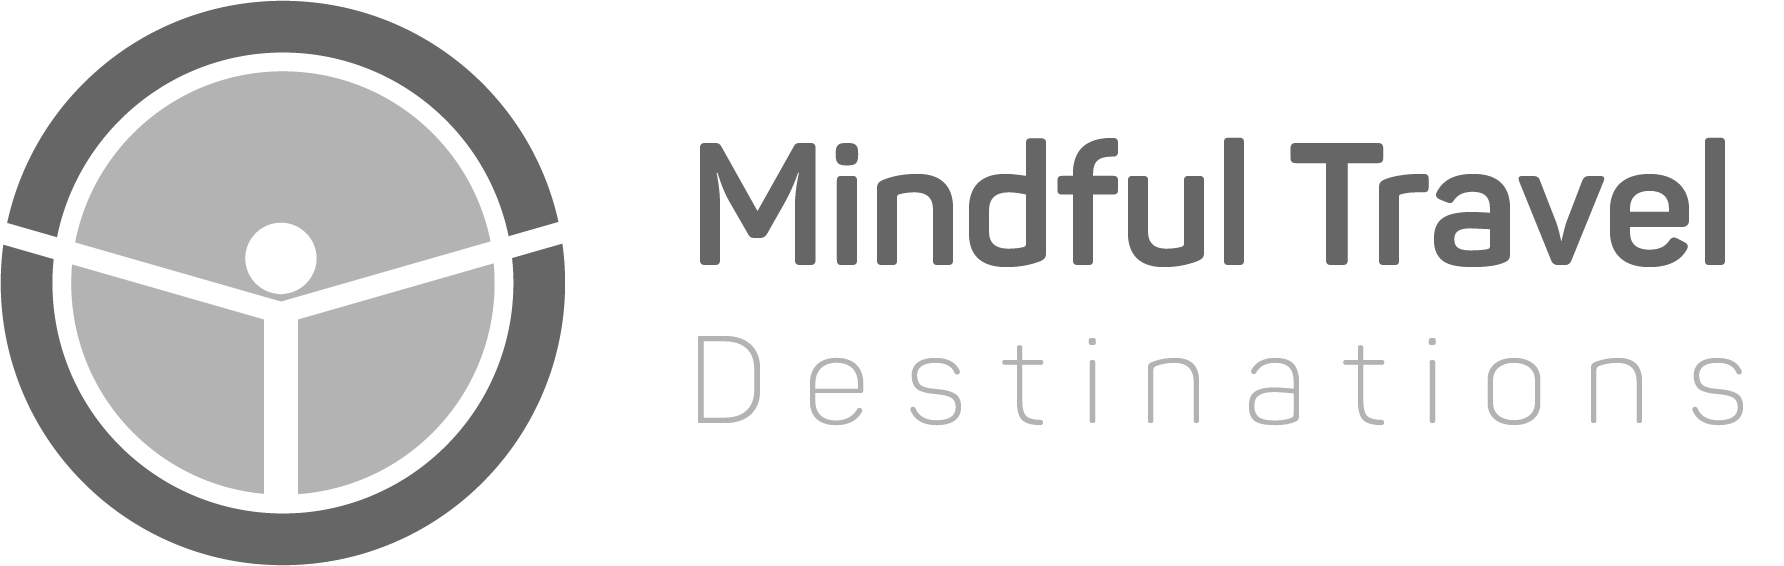 Logo Mindful Travel Destinations en Blanco y negro